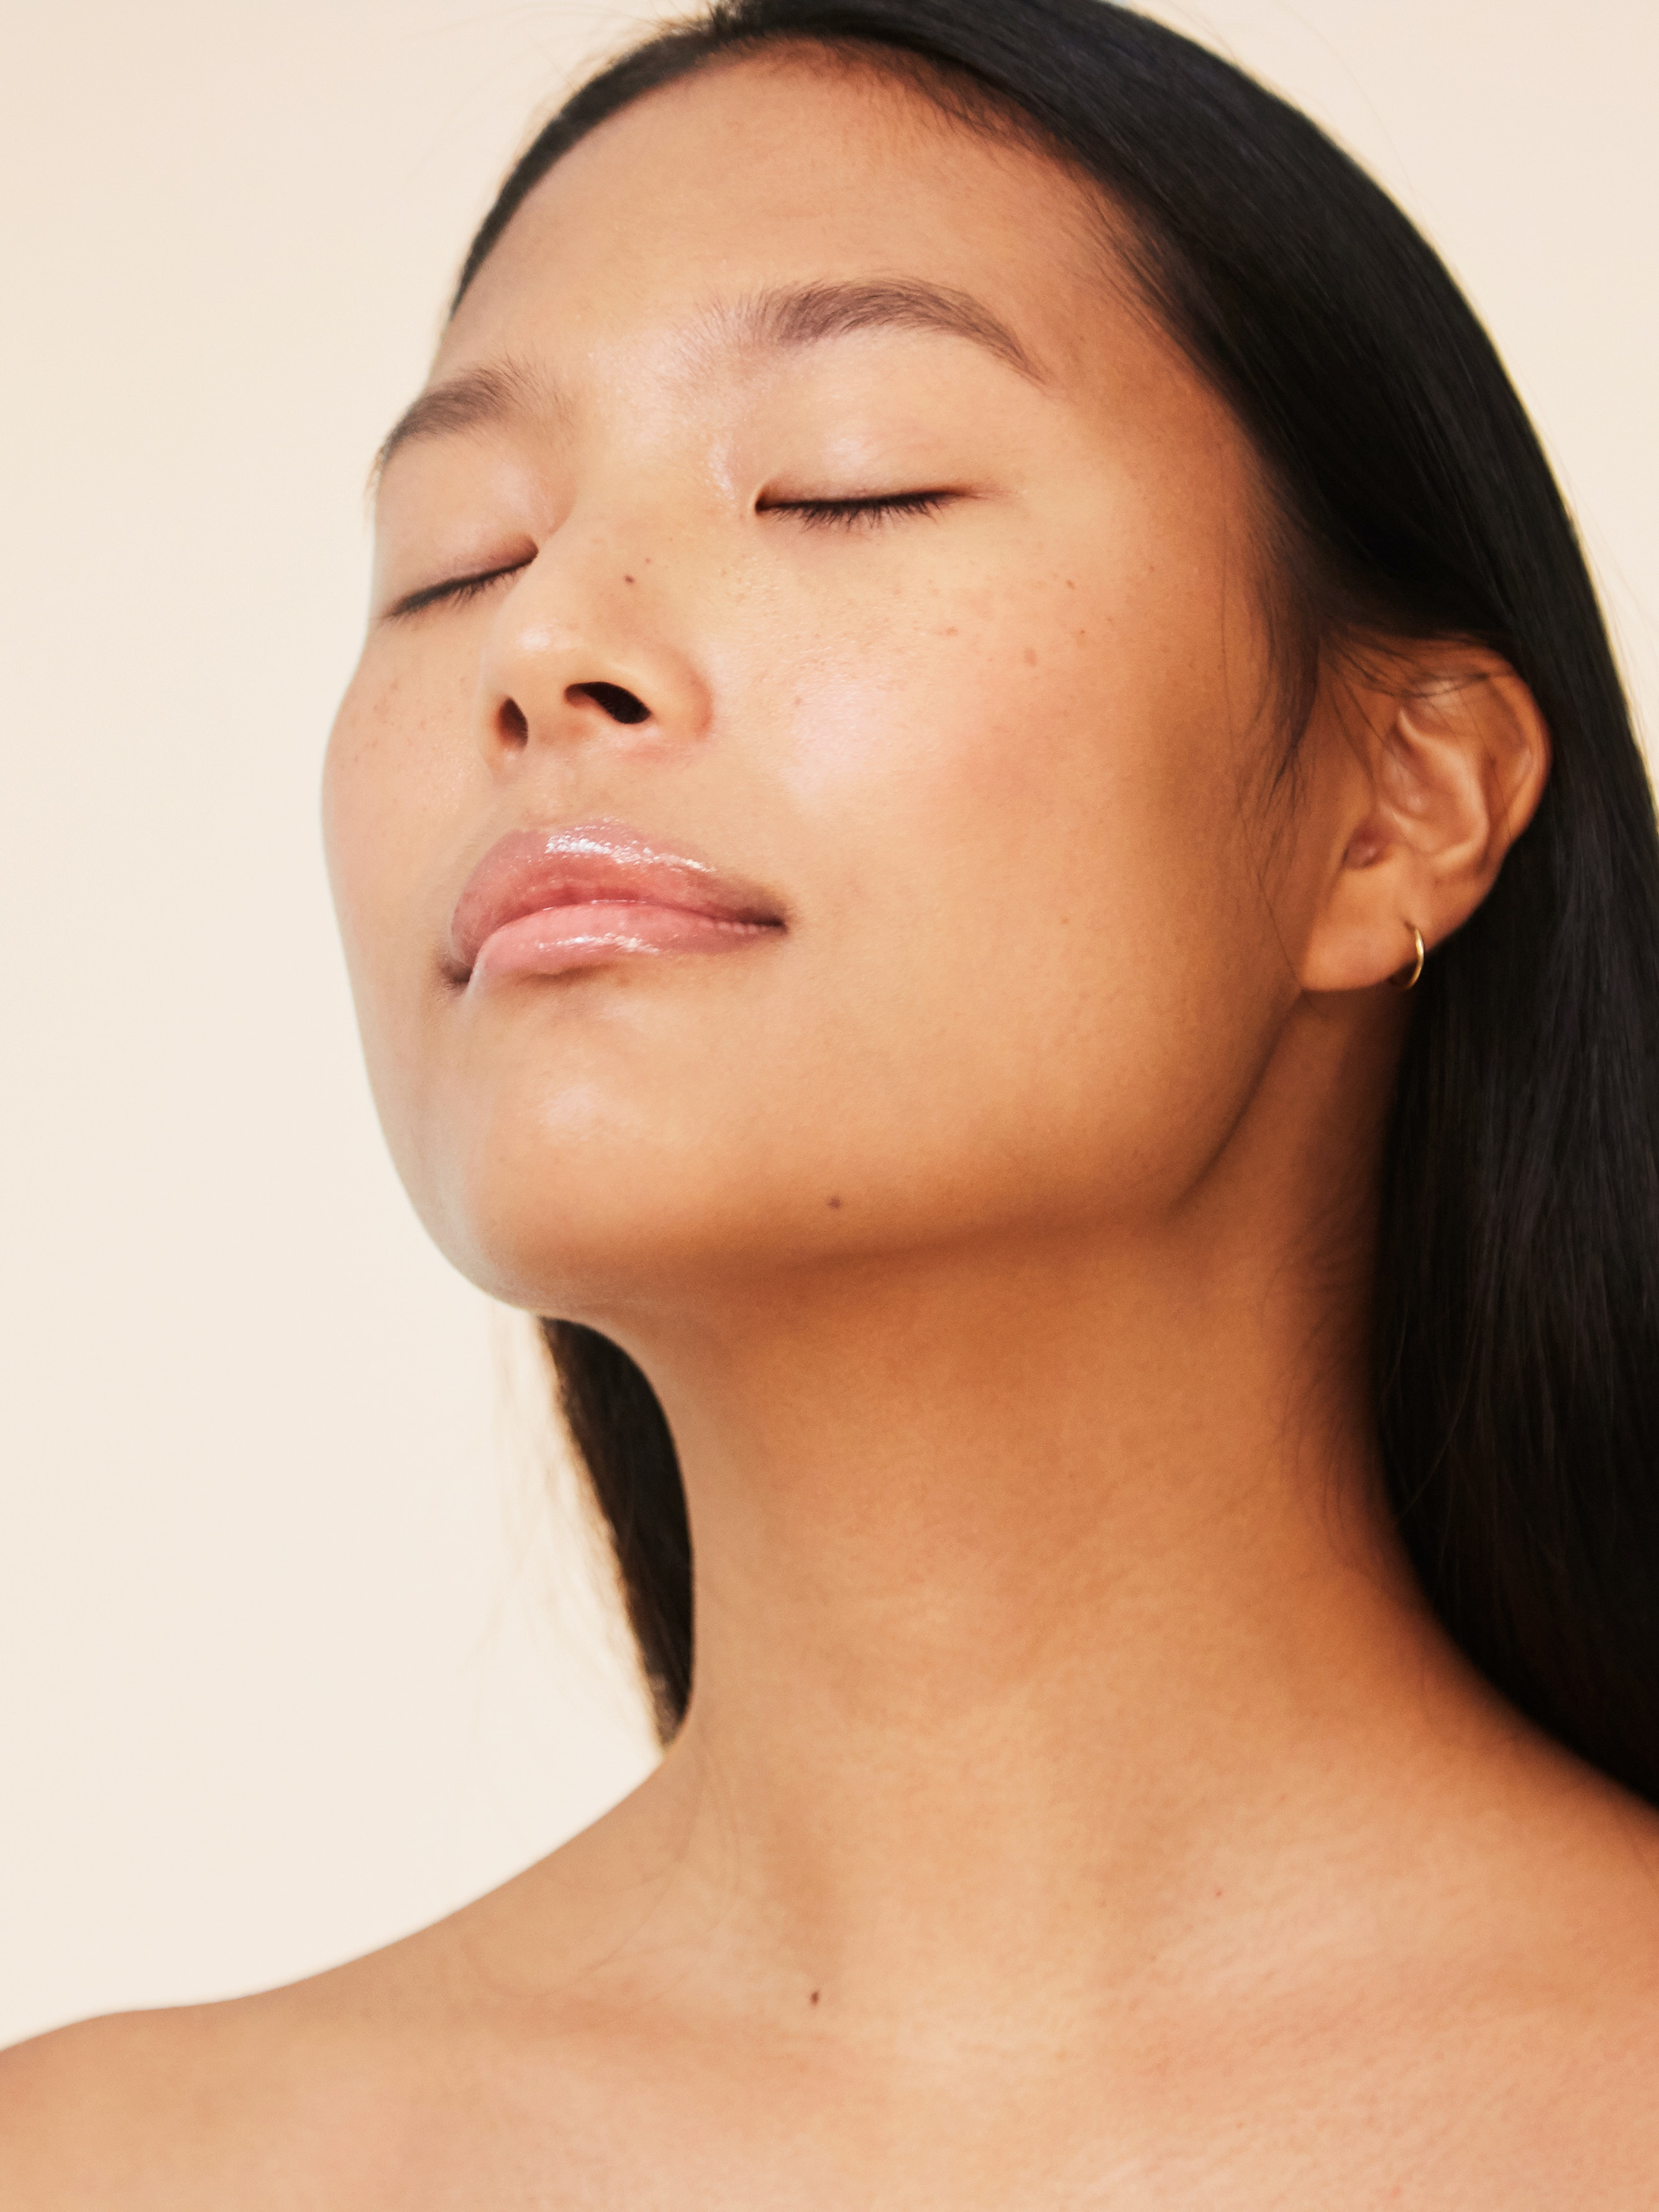 how to take care of your skin after aesthetic treatments woman smiling